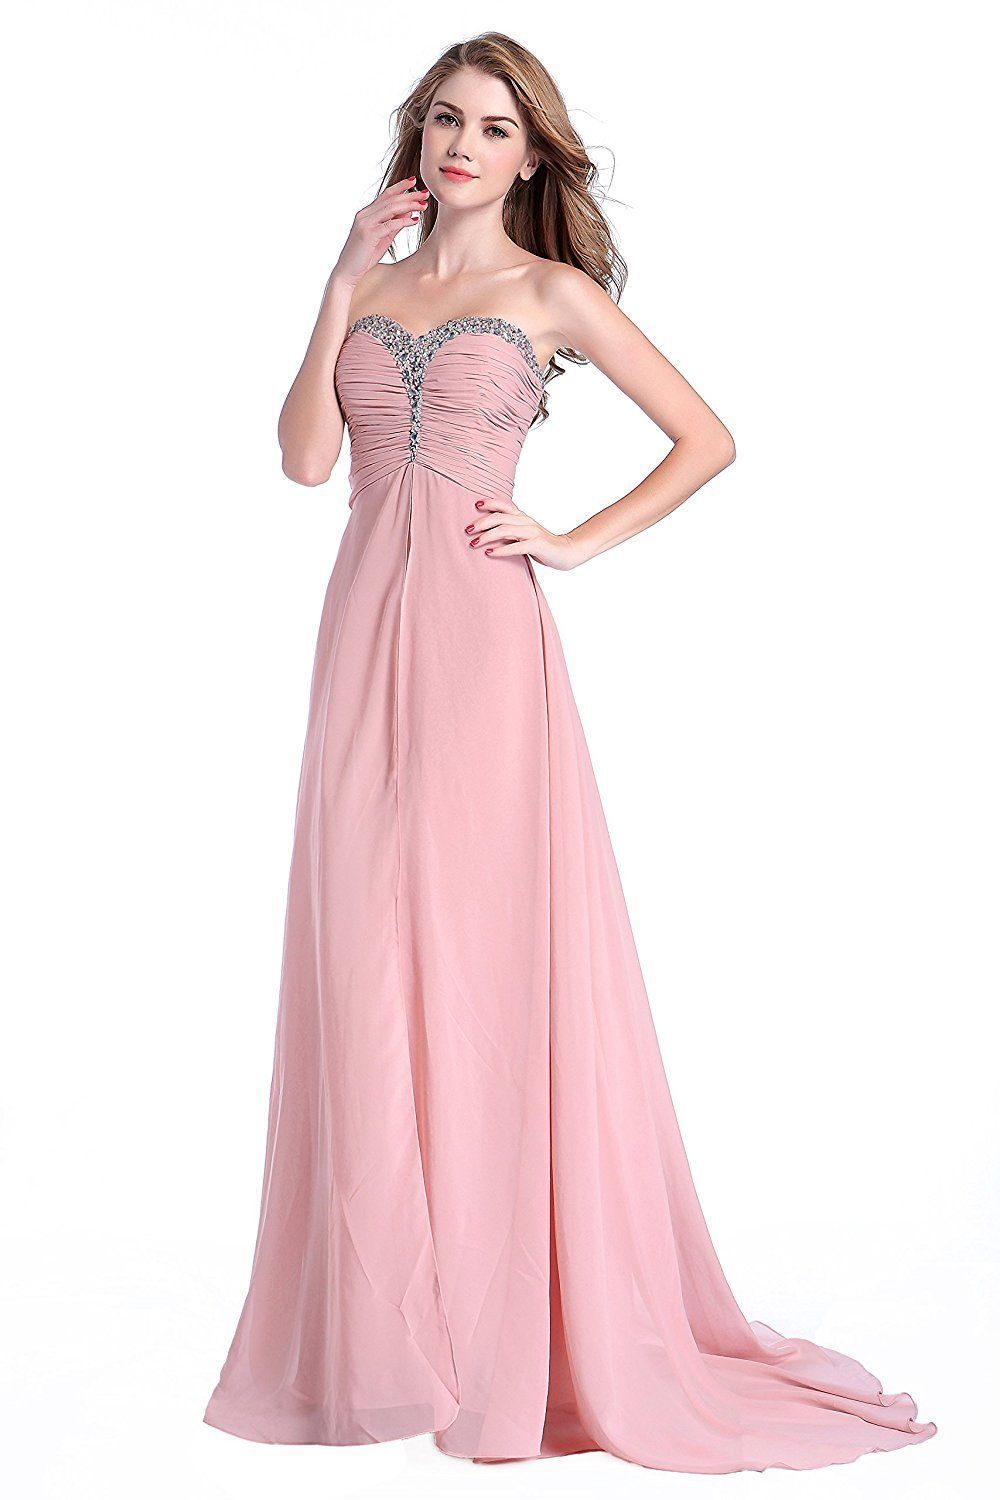 Awesome Bridesmaid Dress for Women Beaded Rhinestone Formal Prom ...